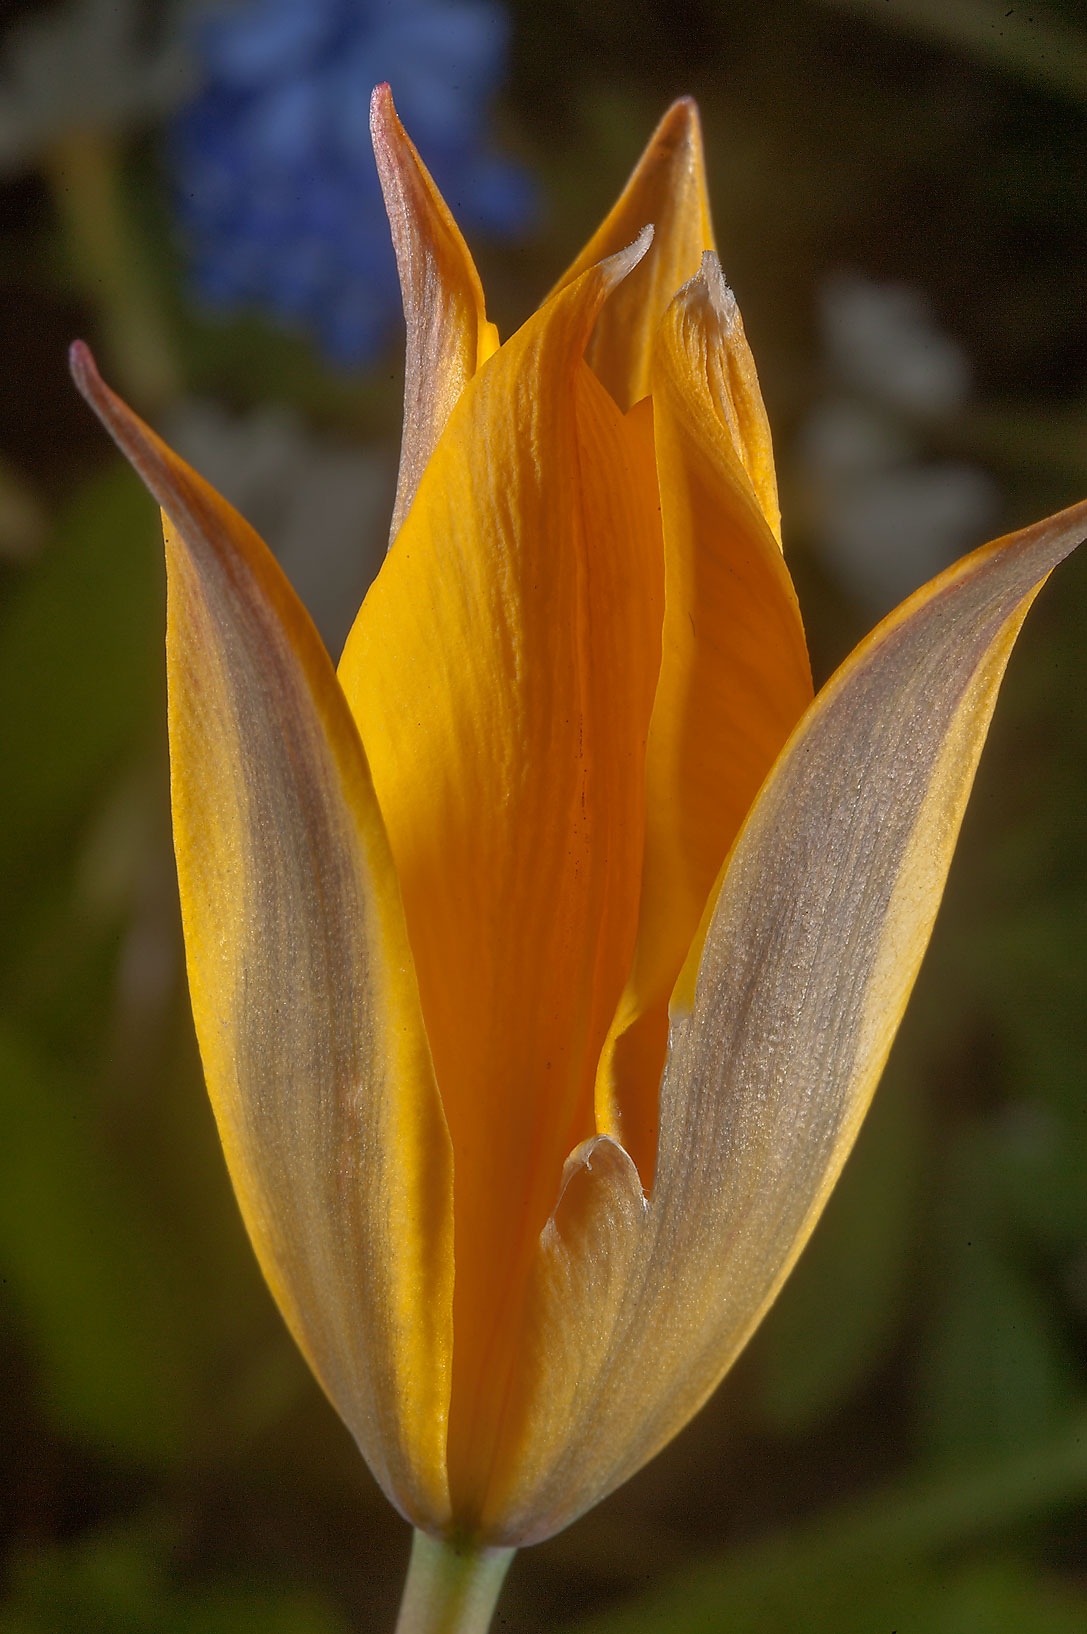 Yellow flower of Tulipa iliensis in Botanic...Institute. St.Petersburg, Russia